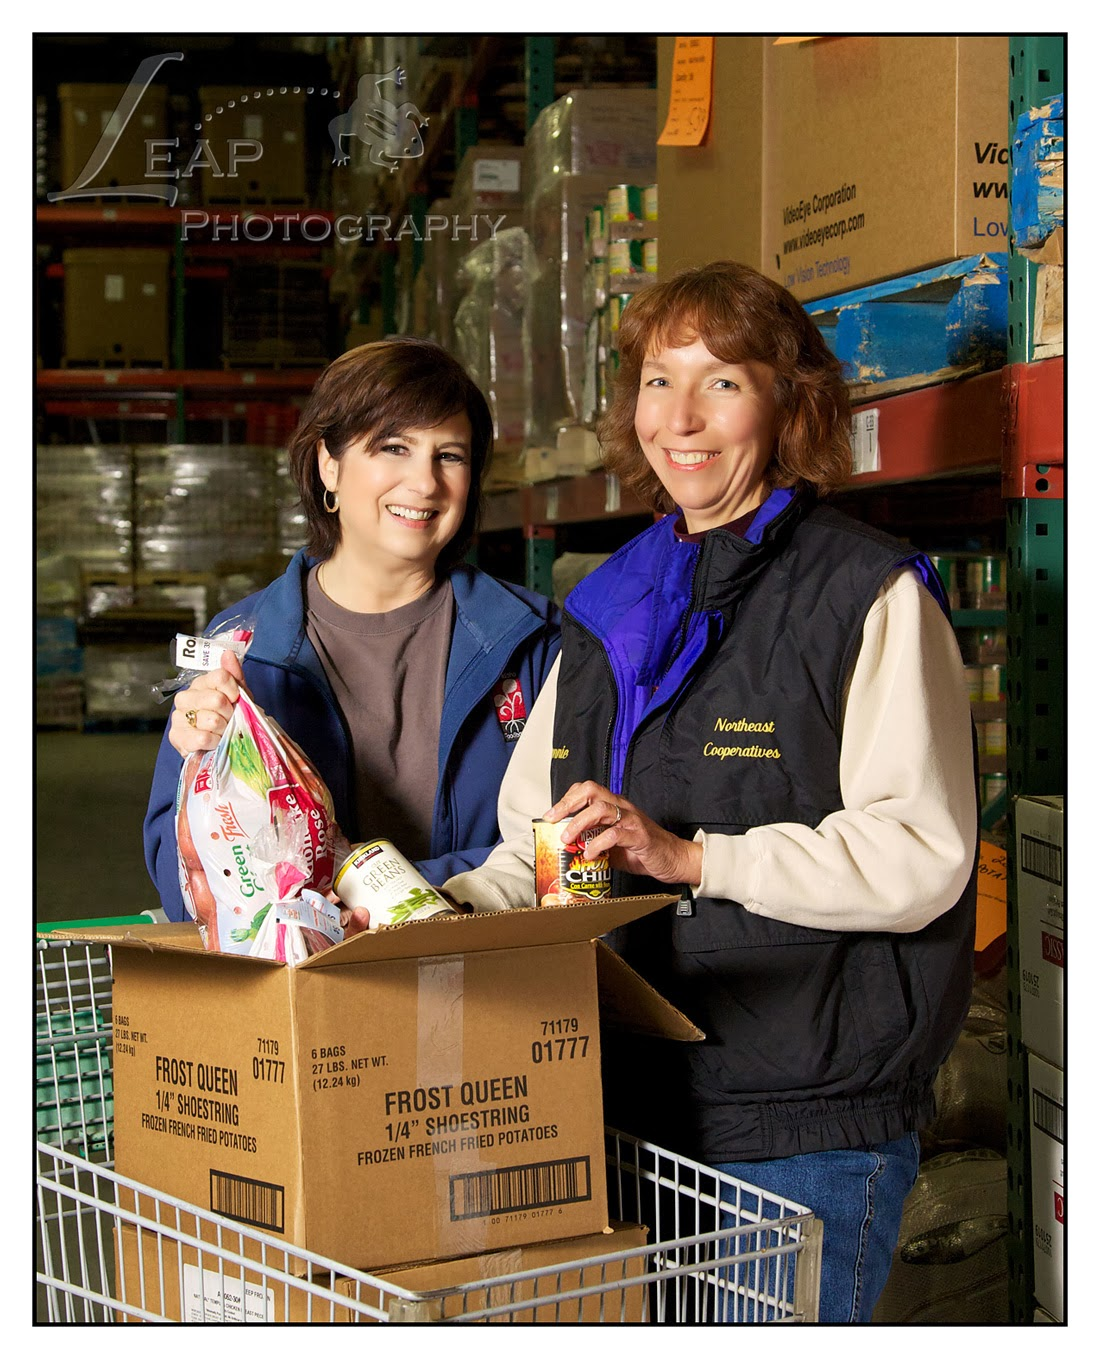 Terri Tate  & fellow employee, in the Idaho Food Bank warehouse